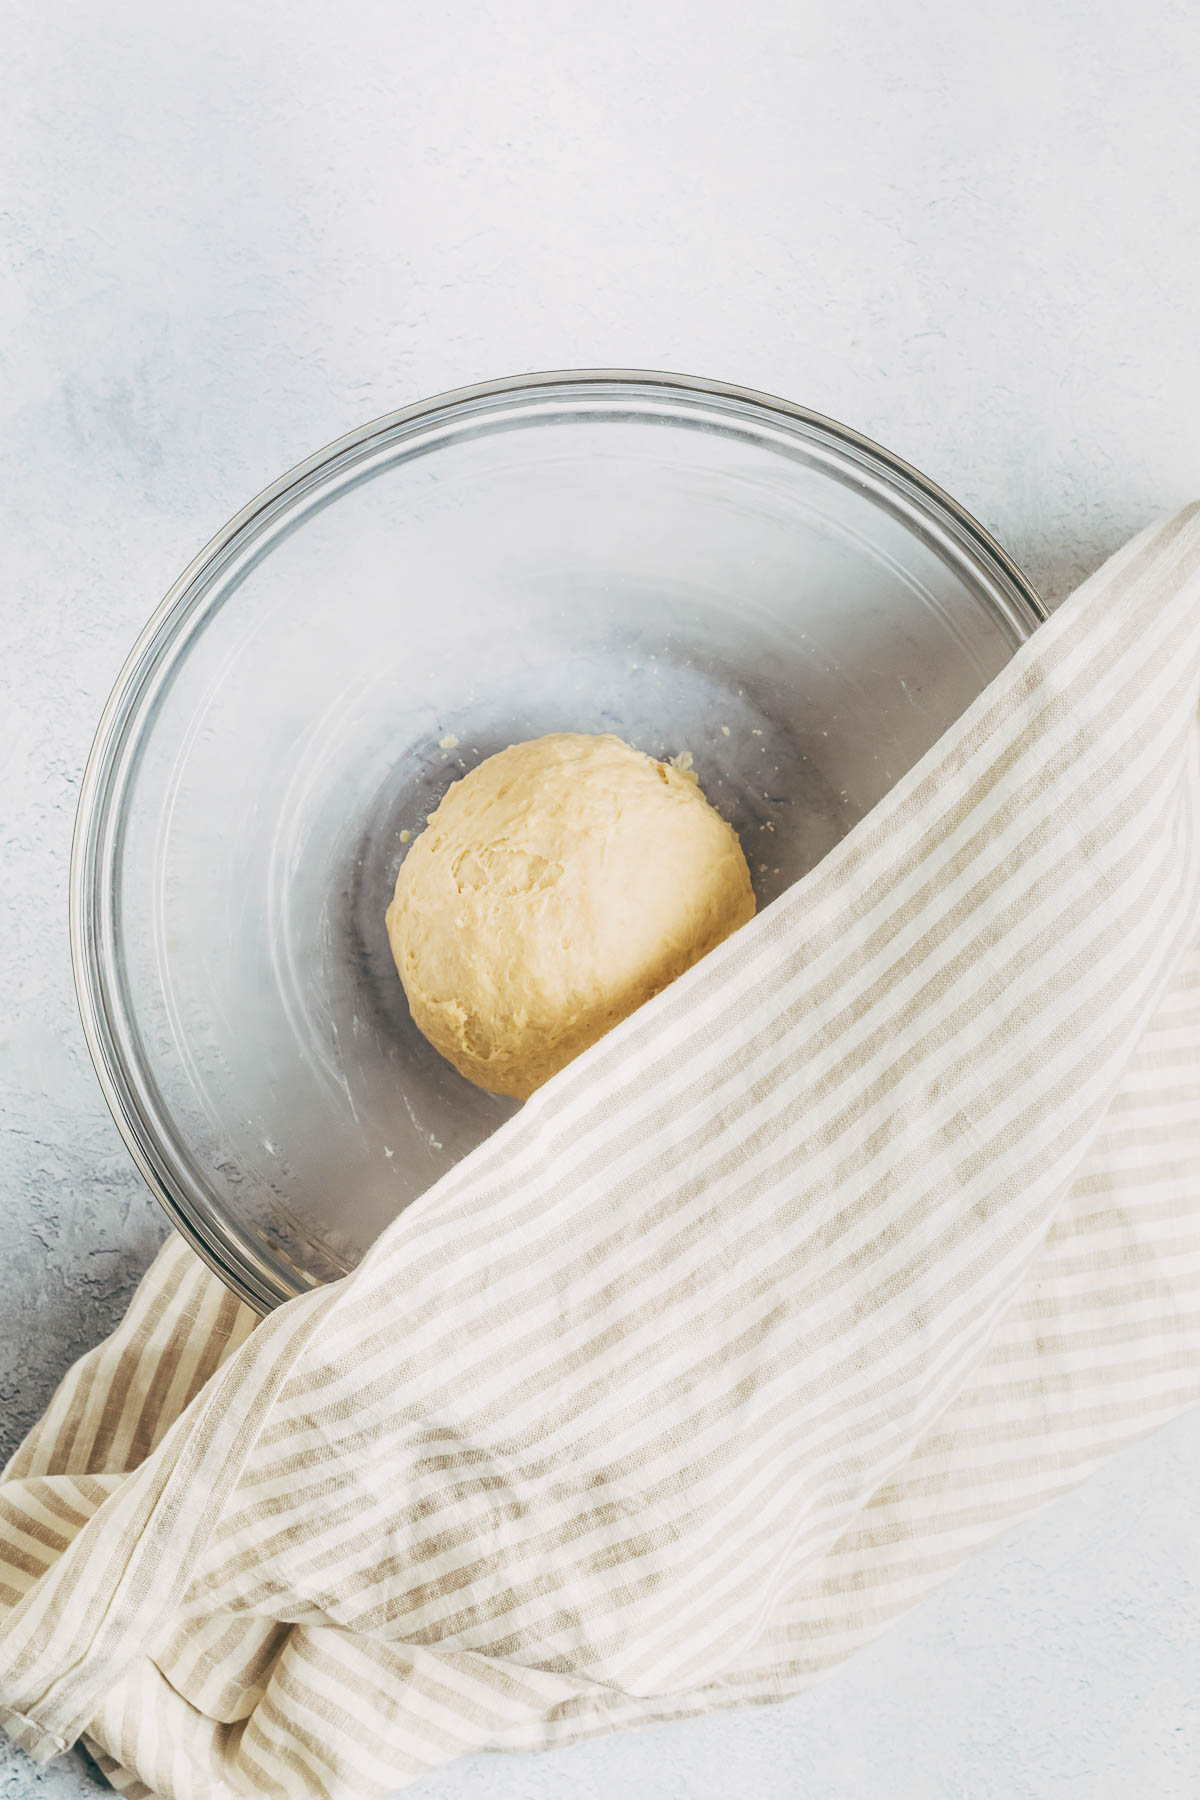 Kneaded dough in a mixing bowl, half covered by a towel.